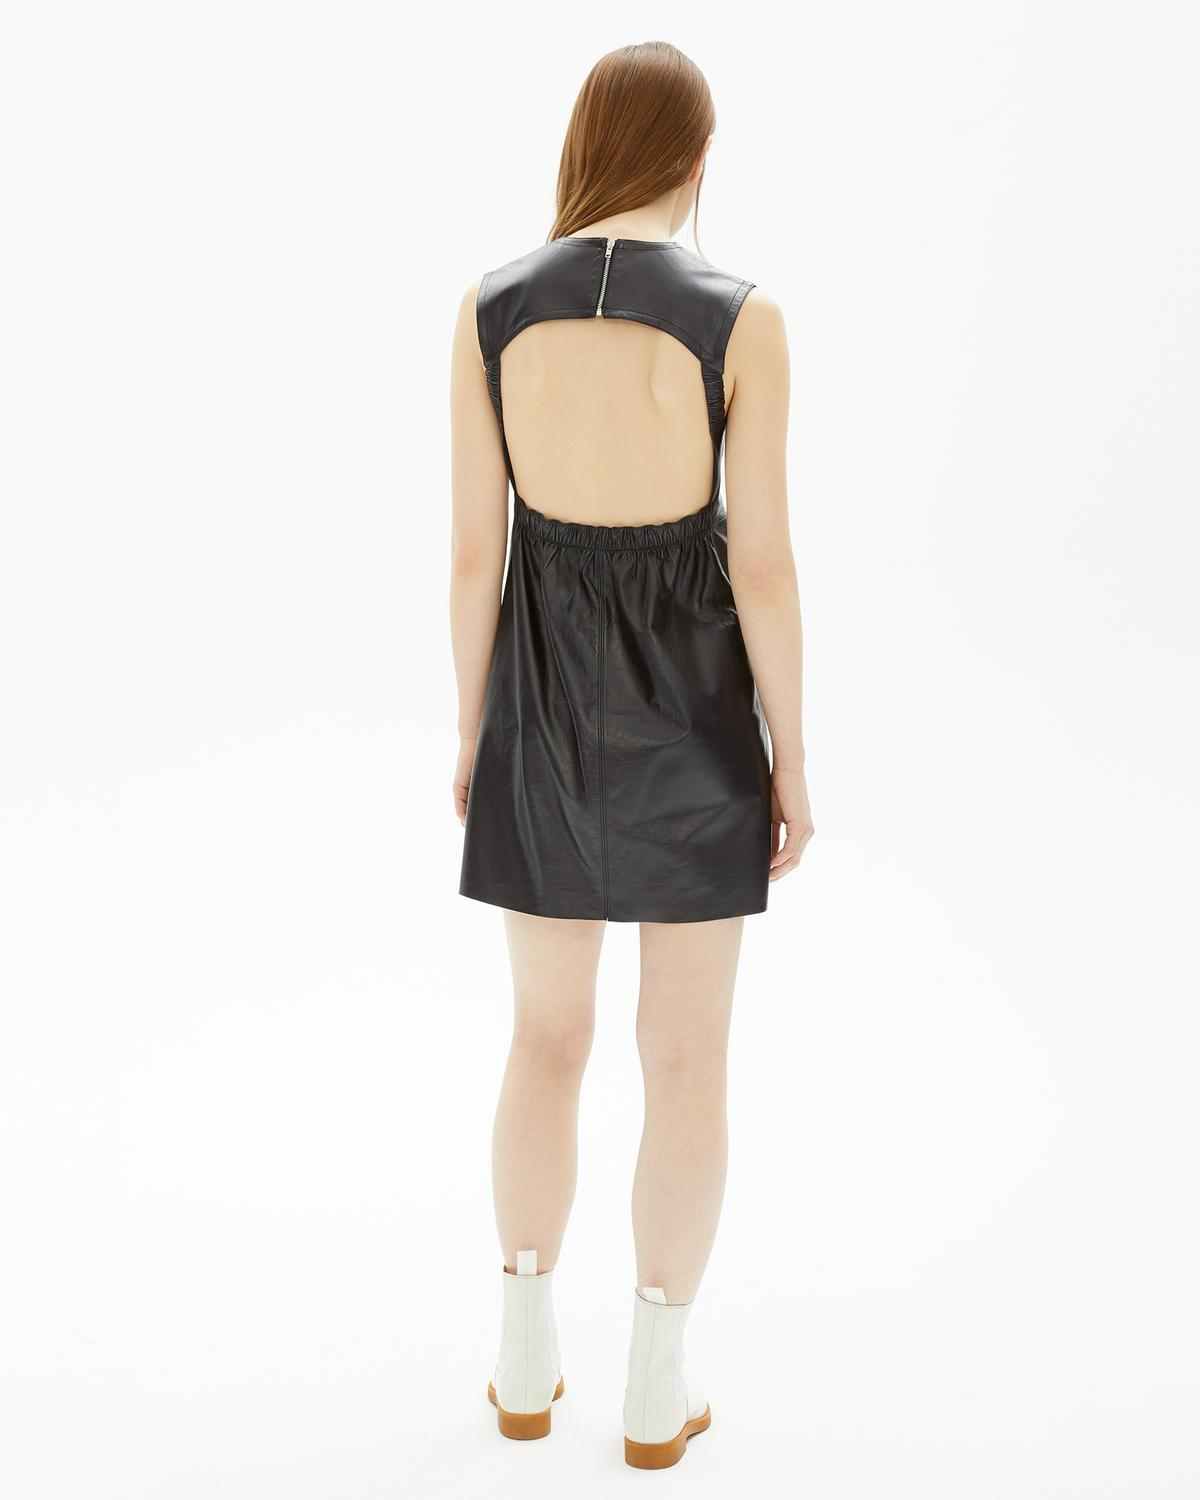 BACK OPEN LEATHER DRESS